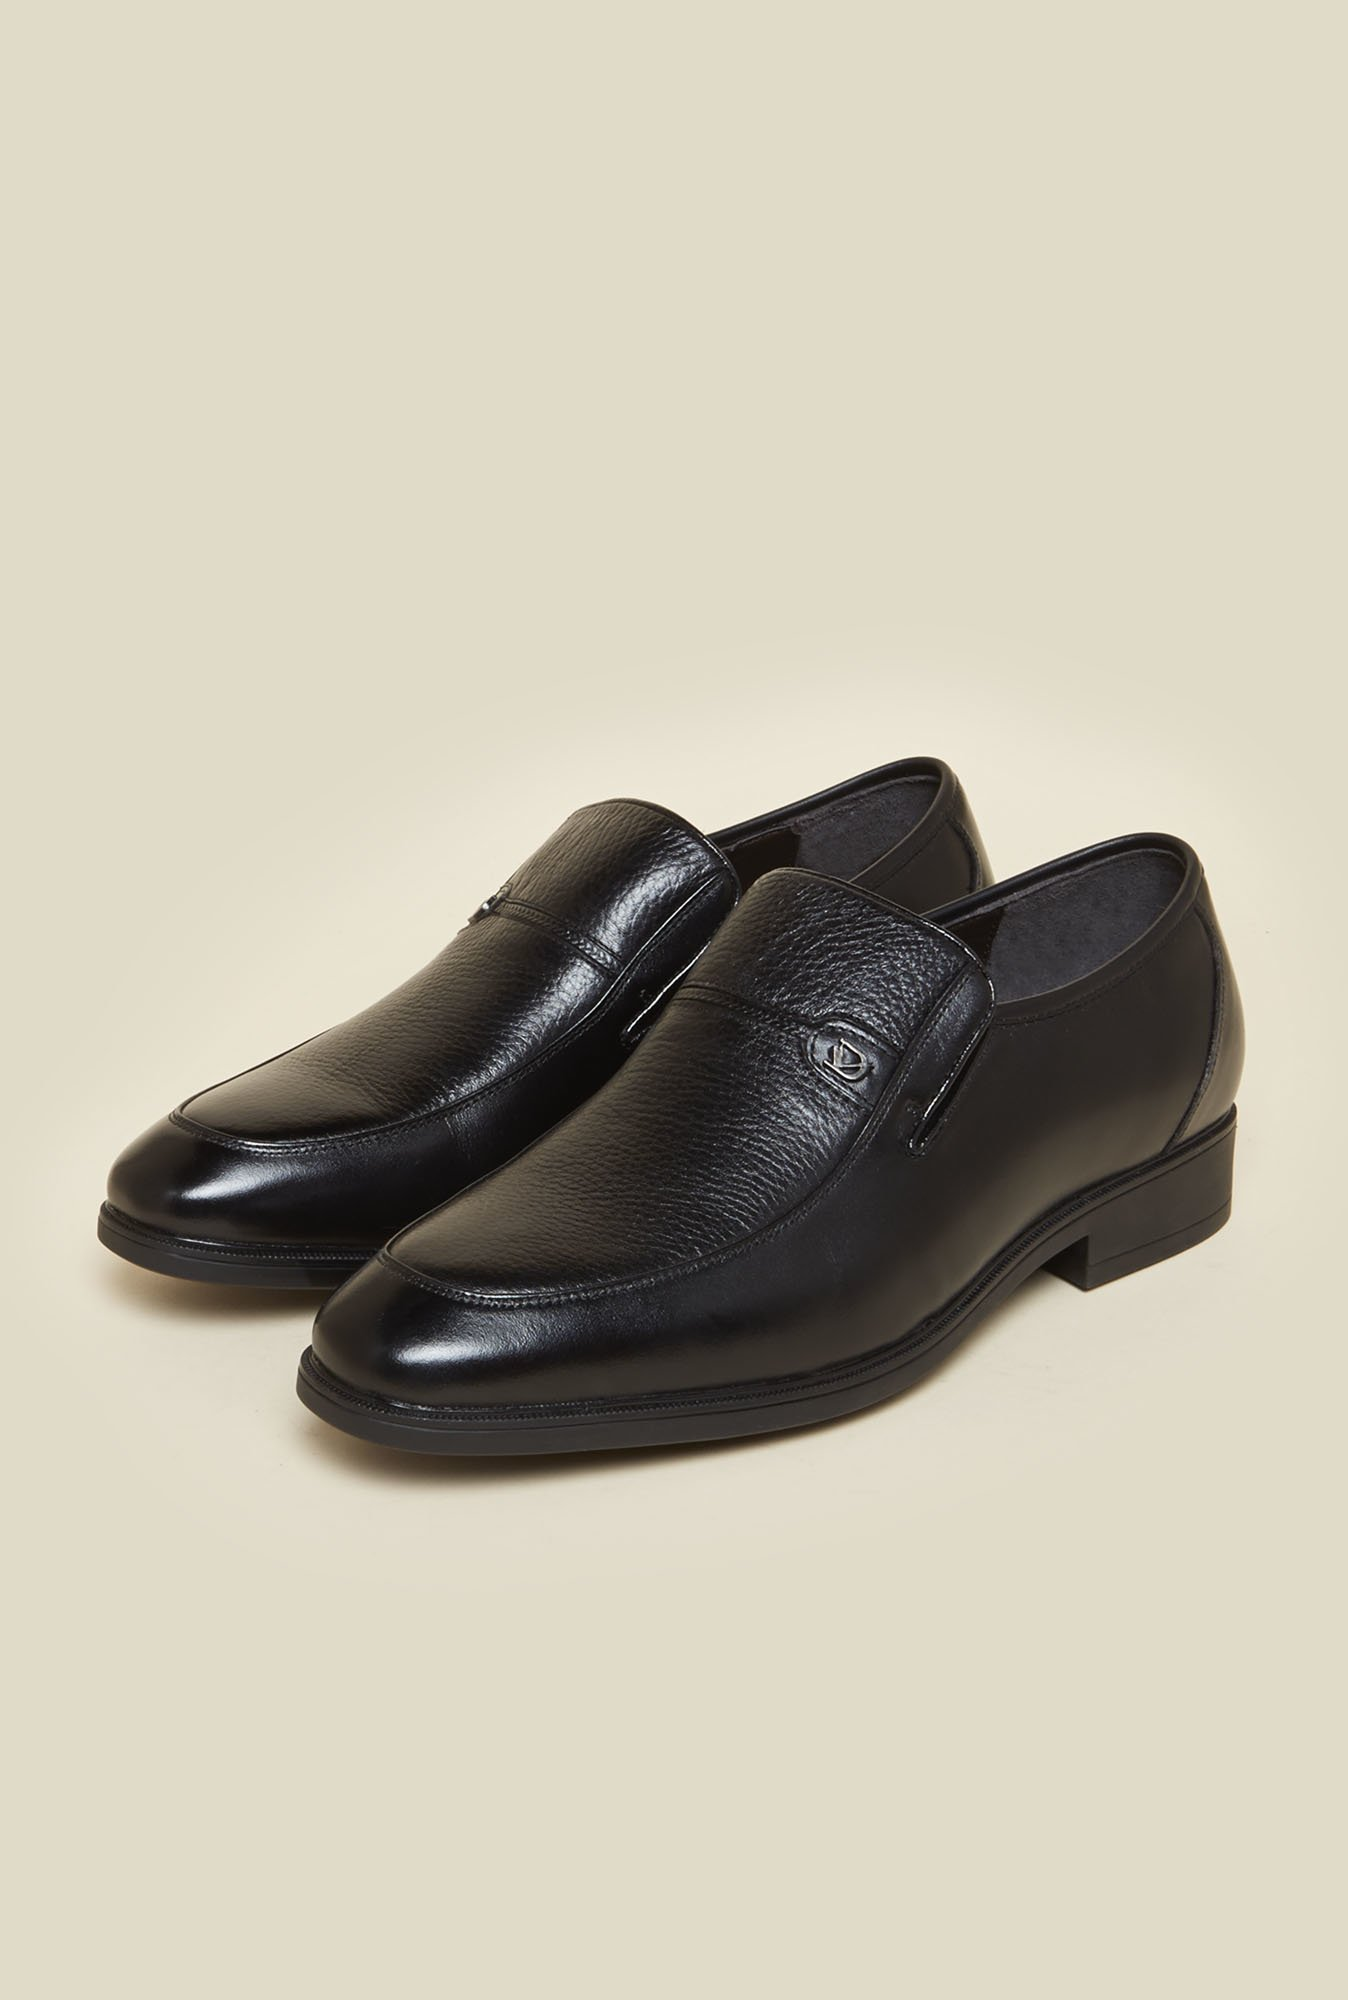 Da Vinchi Black Formal Moccasin